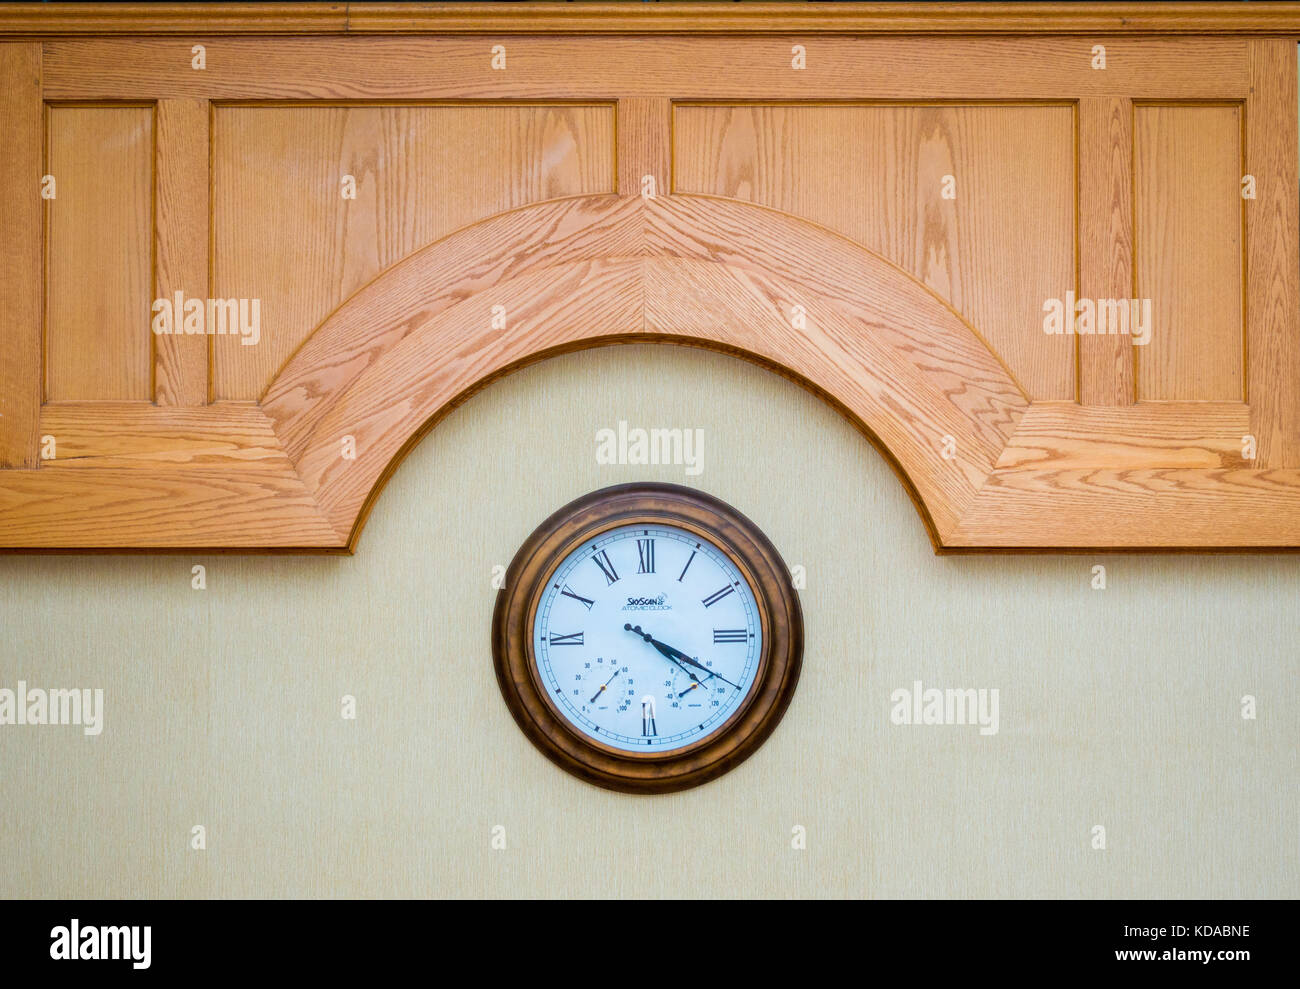 classic wall clock with Roman numerals beneath a carved wood panel - Stock Image